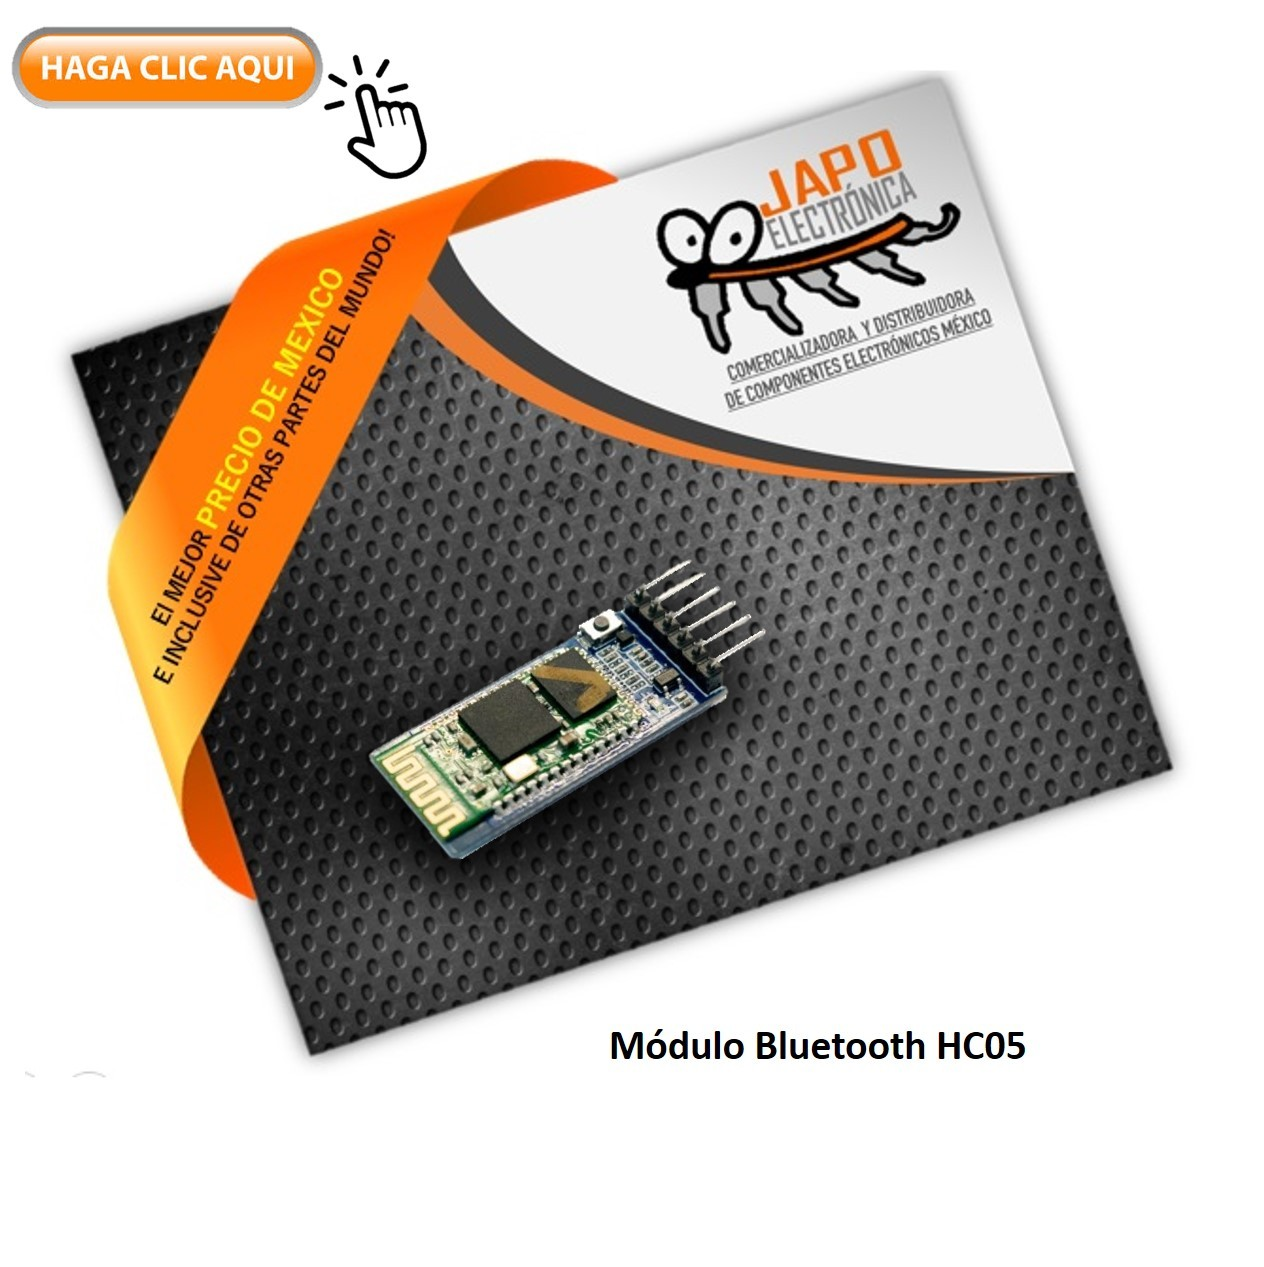 Módulo Bluetooth HC05